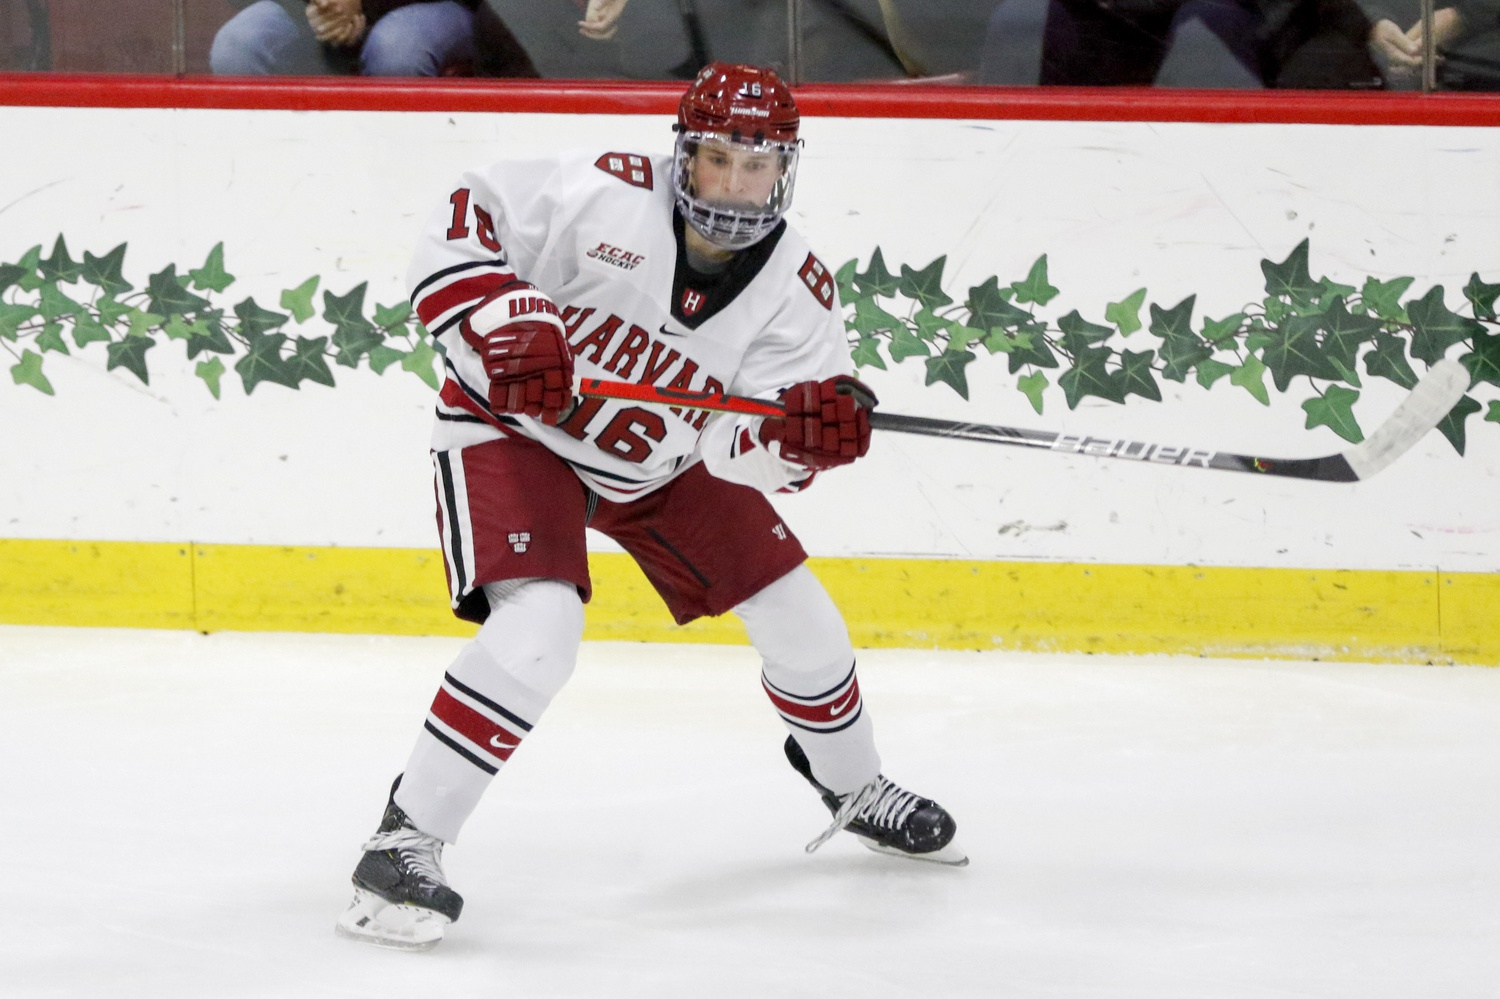 Rookie forward Nick Abruzzese leads all freshmen in the country in points per game (1.24).